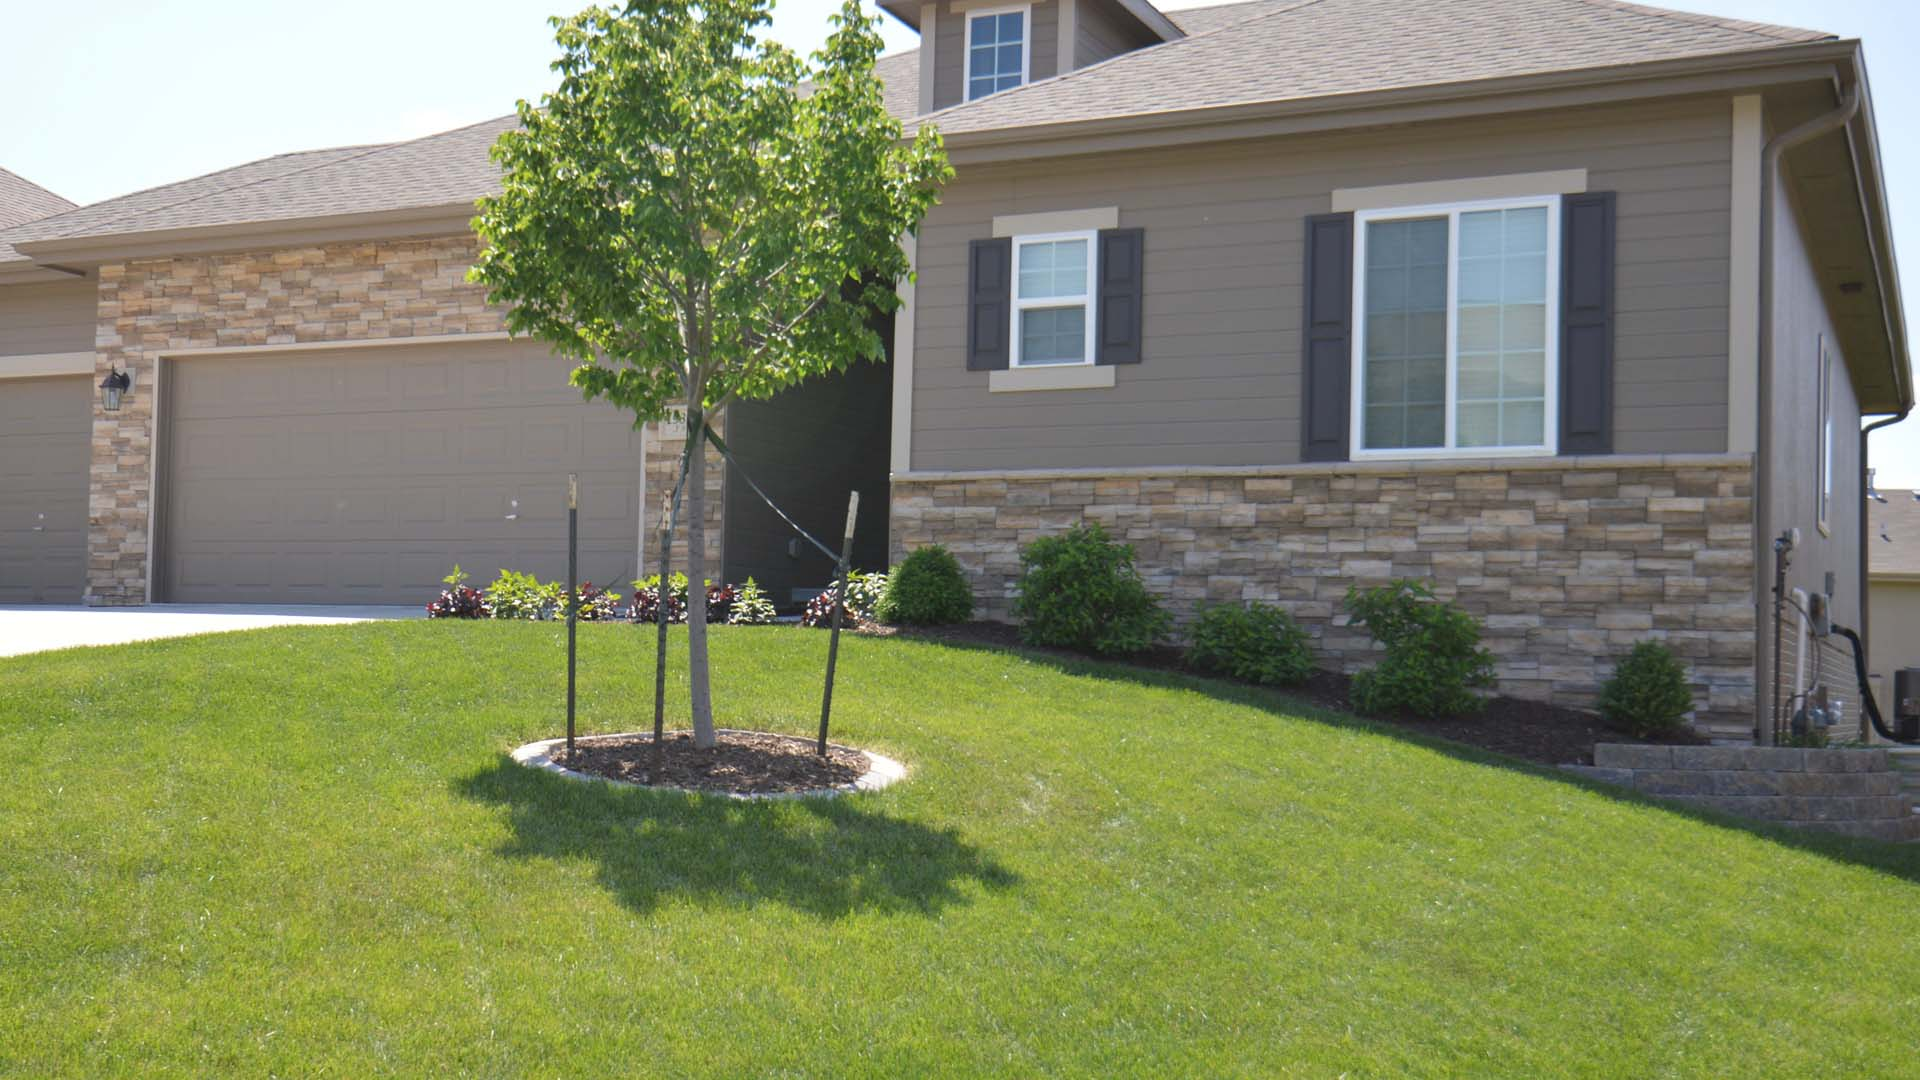 Fertilizing services in Louisville, Bellevue, Papillion, %%state%%